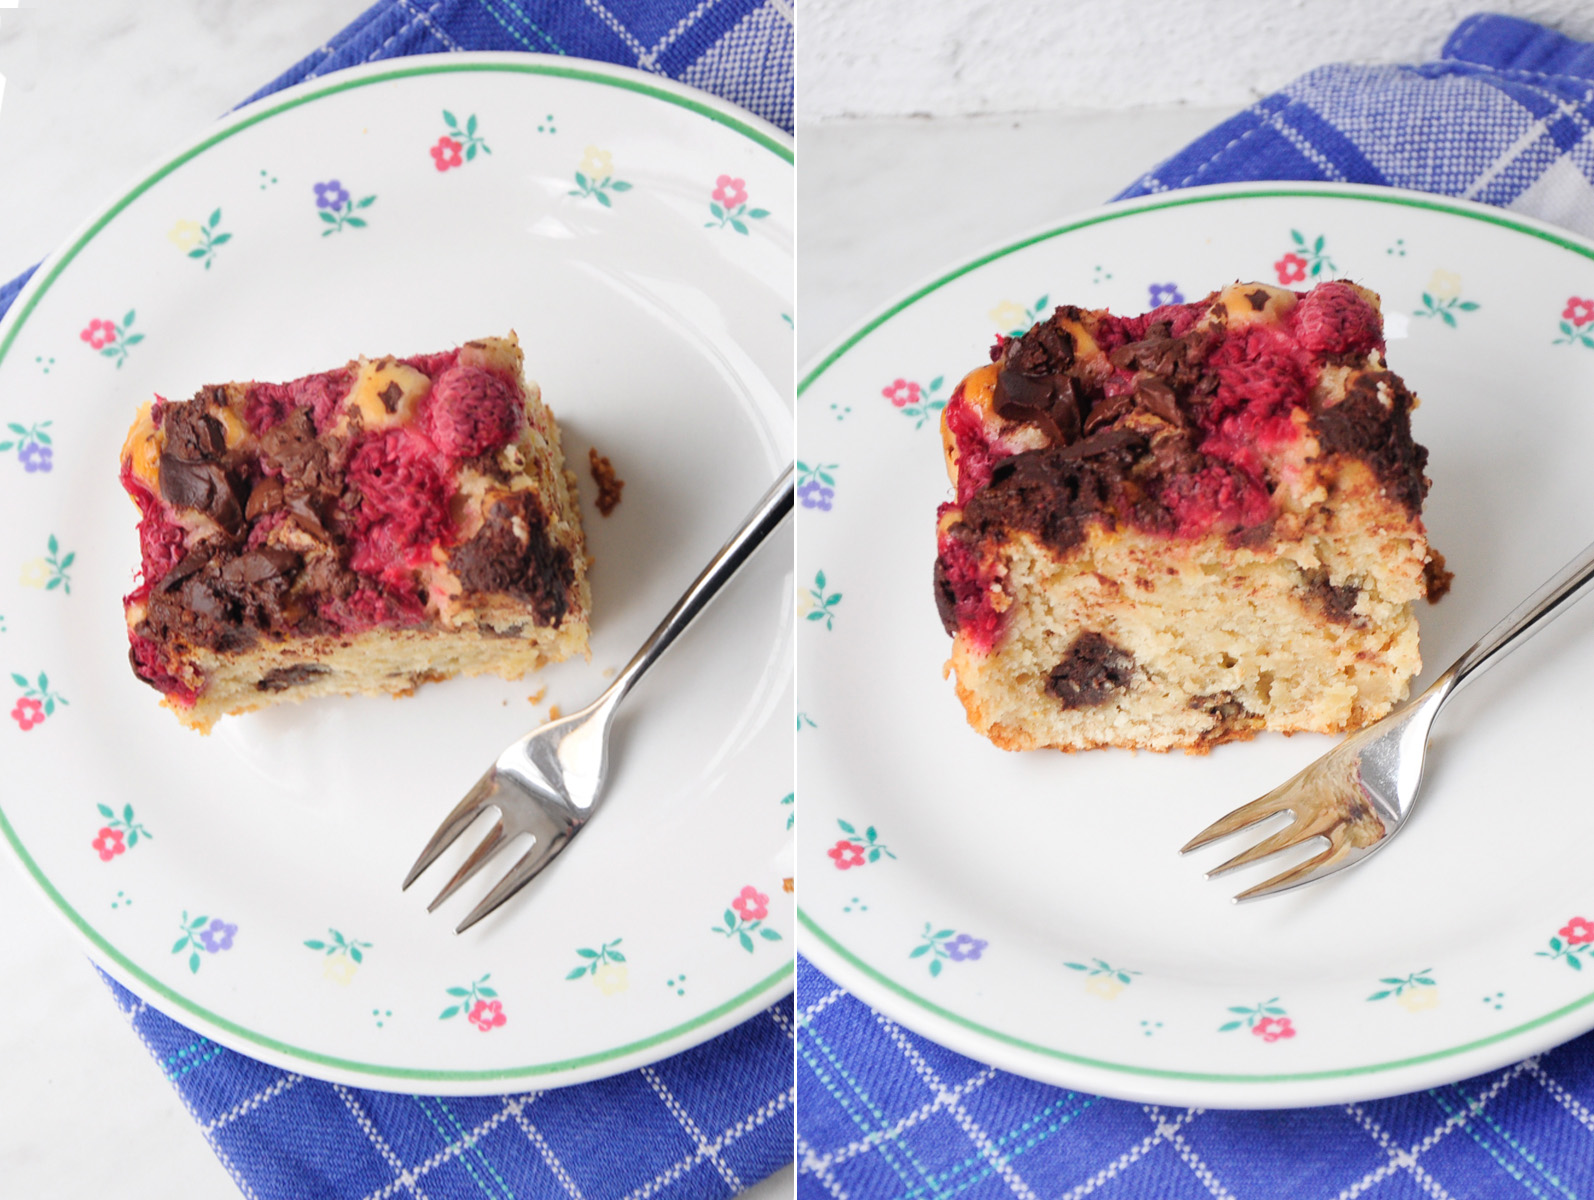 blog-dogdays-of-sumer-vegan-chocolat-raspberry-cake-1